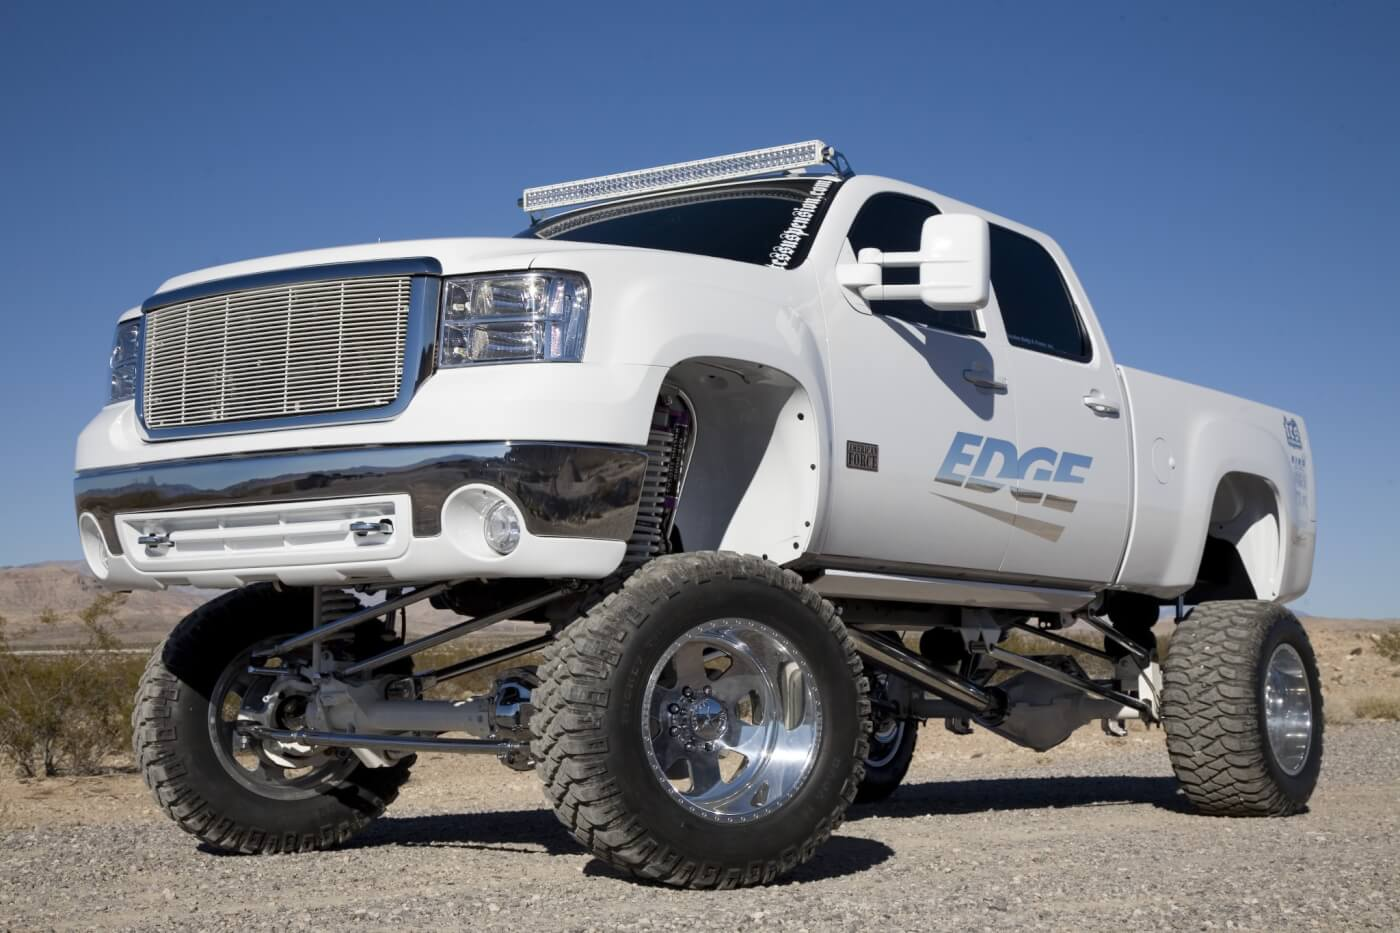 The 2008 Sierra 4x4 truck gets its lift from a 7-inch TCS Suspension kit. The TCS kit is said to be 100-percent bolt-on, no welding or cutting required. Notice the T-Rex grille and the Rigid LED light bar mounted using TCS light bar brackets.